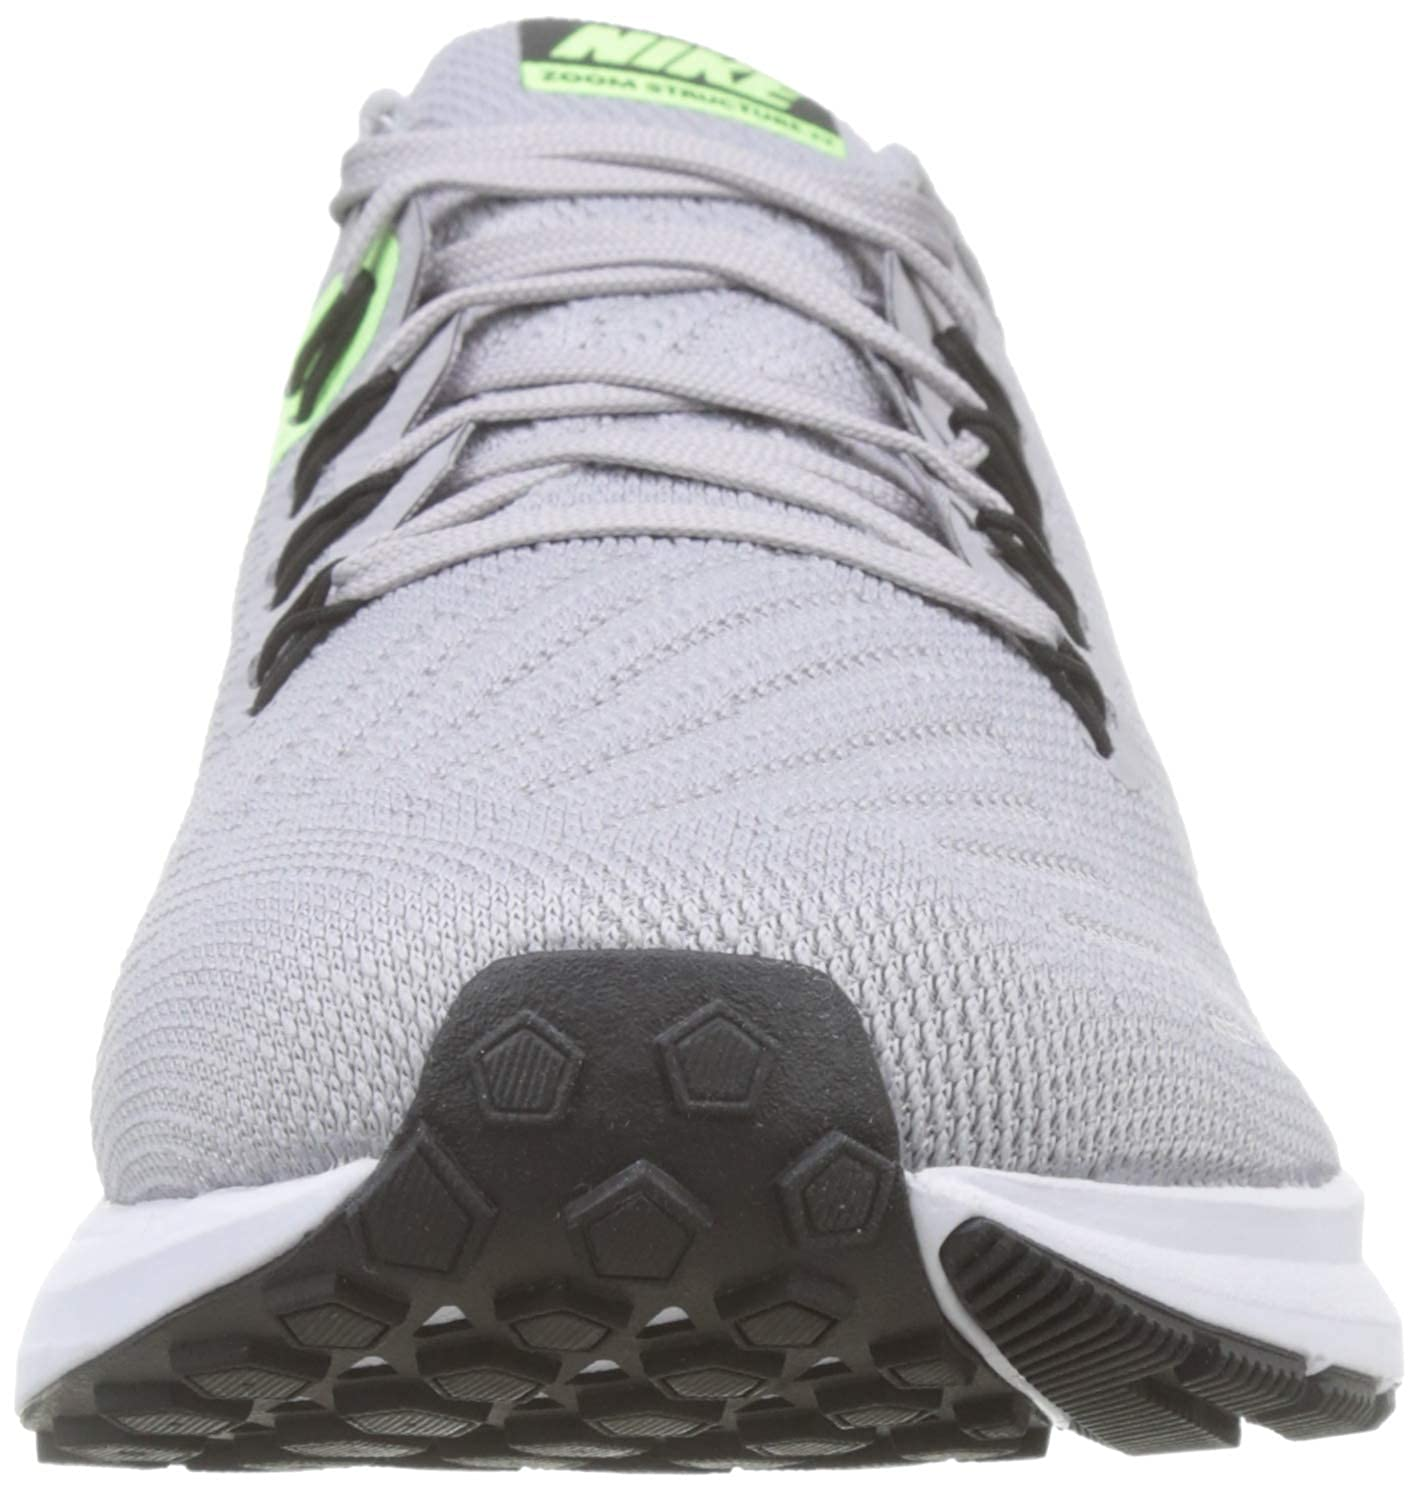 0d4dab6d28cc Nike Men s Air Zoom Structure 22 Running Shoes  Amazon.co.uk  Shoes   Bags